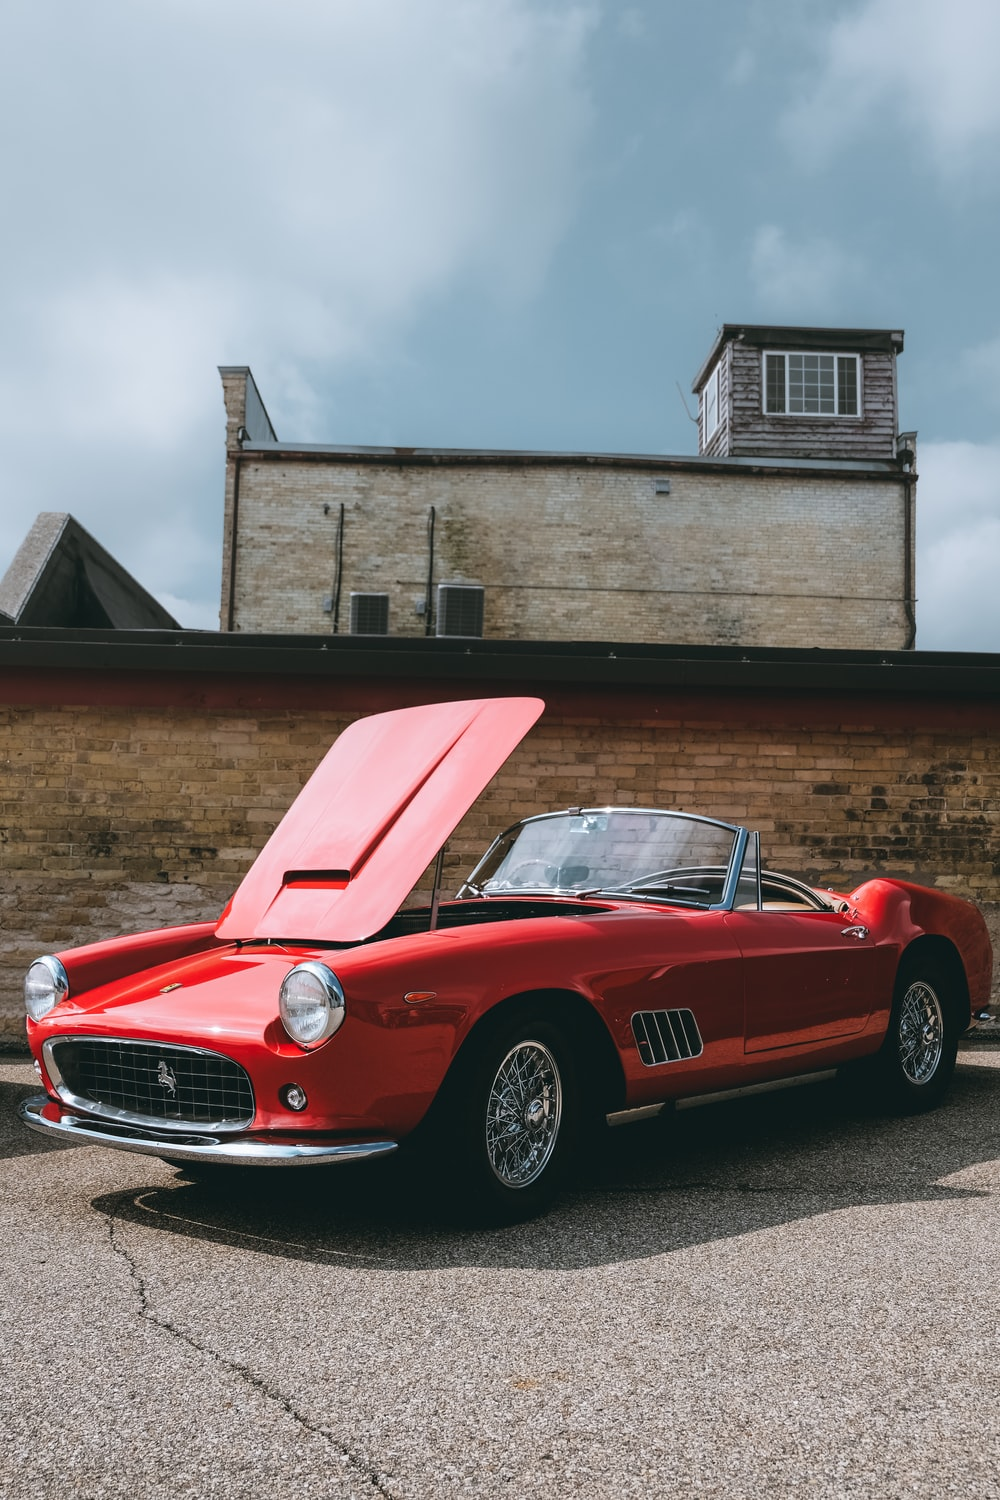 27+ Classic Car Pictures | Download Free Images on Unsplash